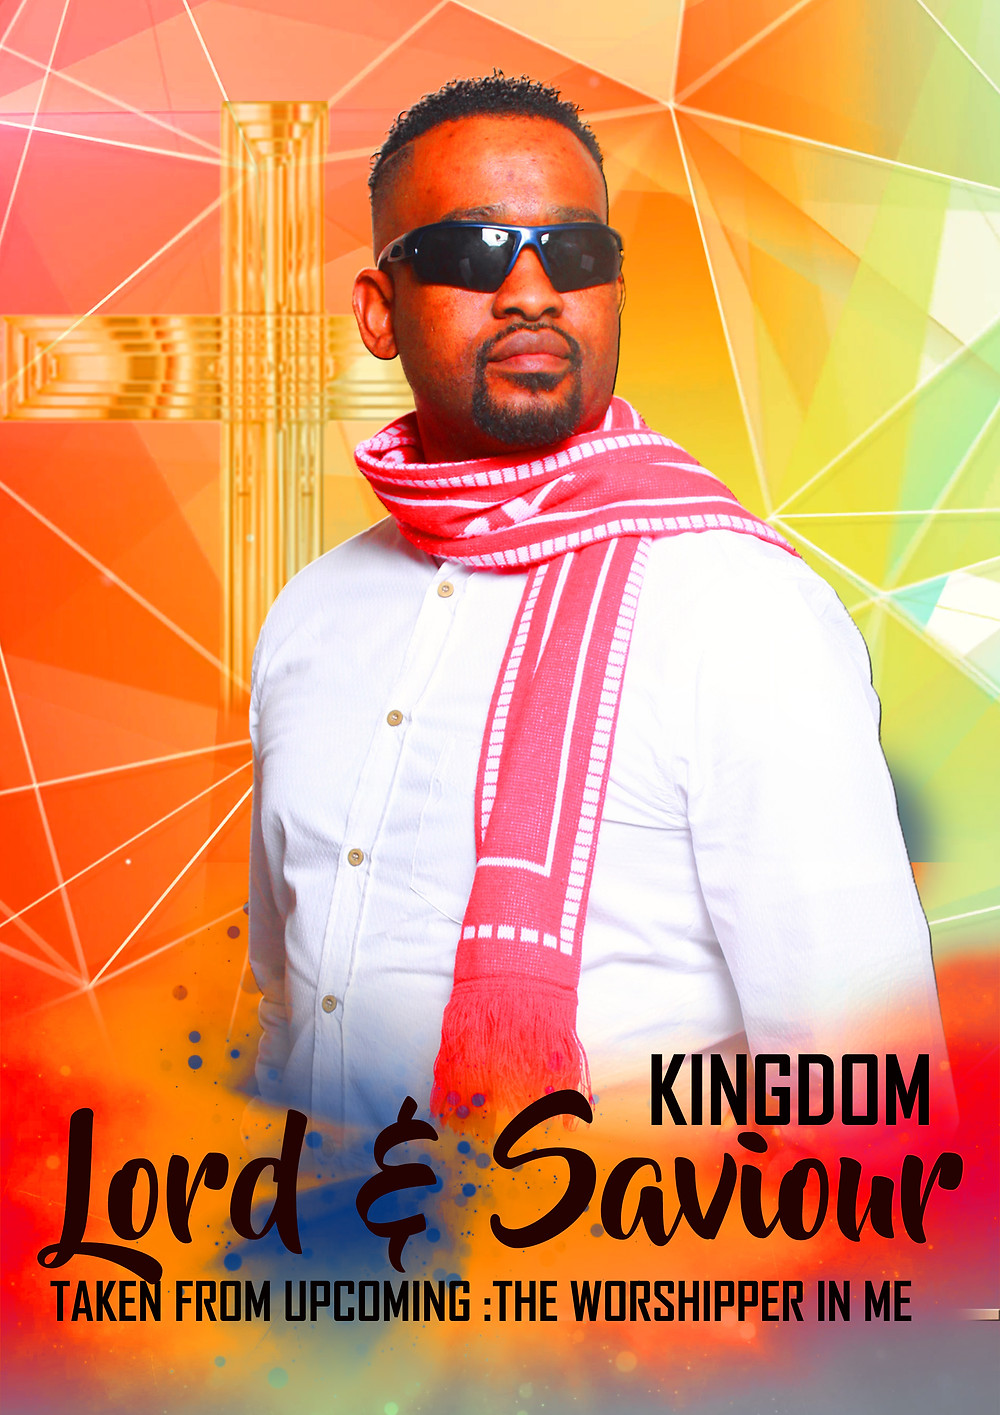 Kingdom Kebaitse - Lord and Saviour